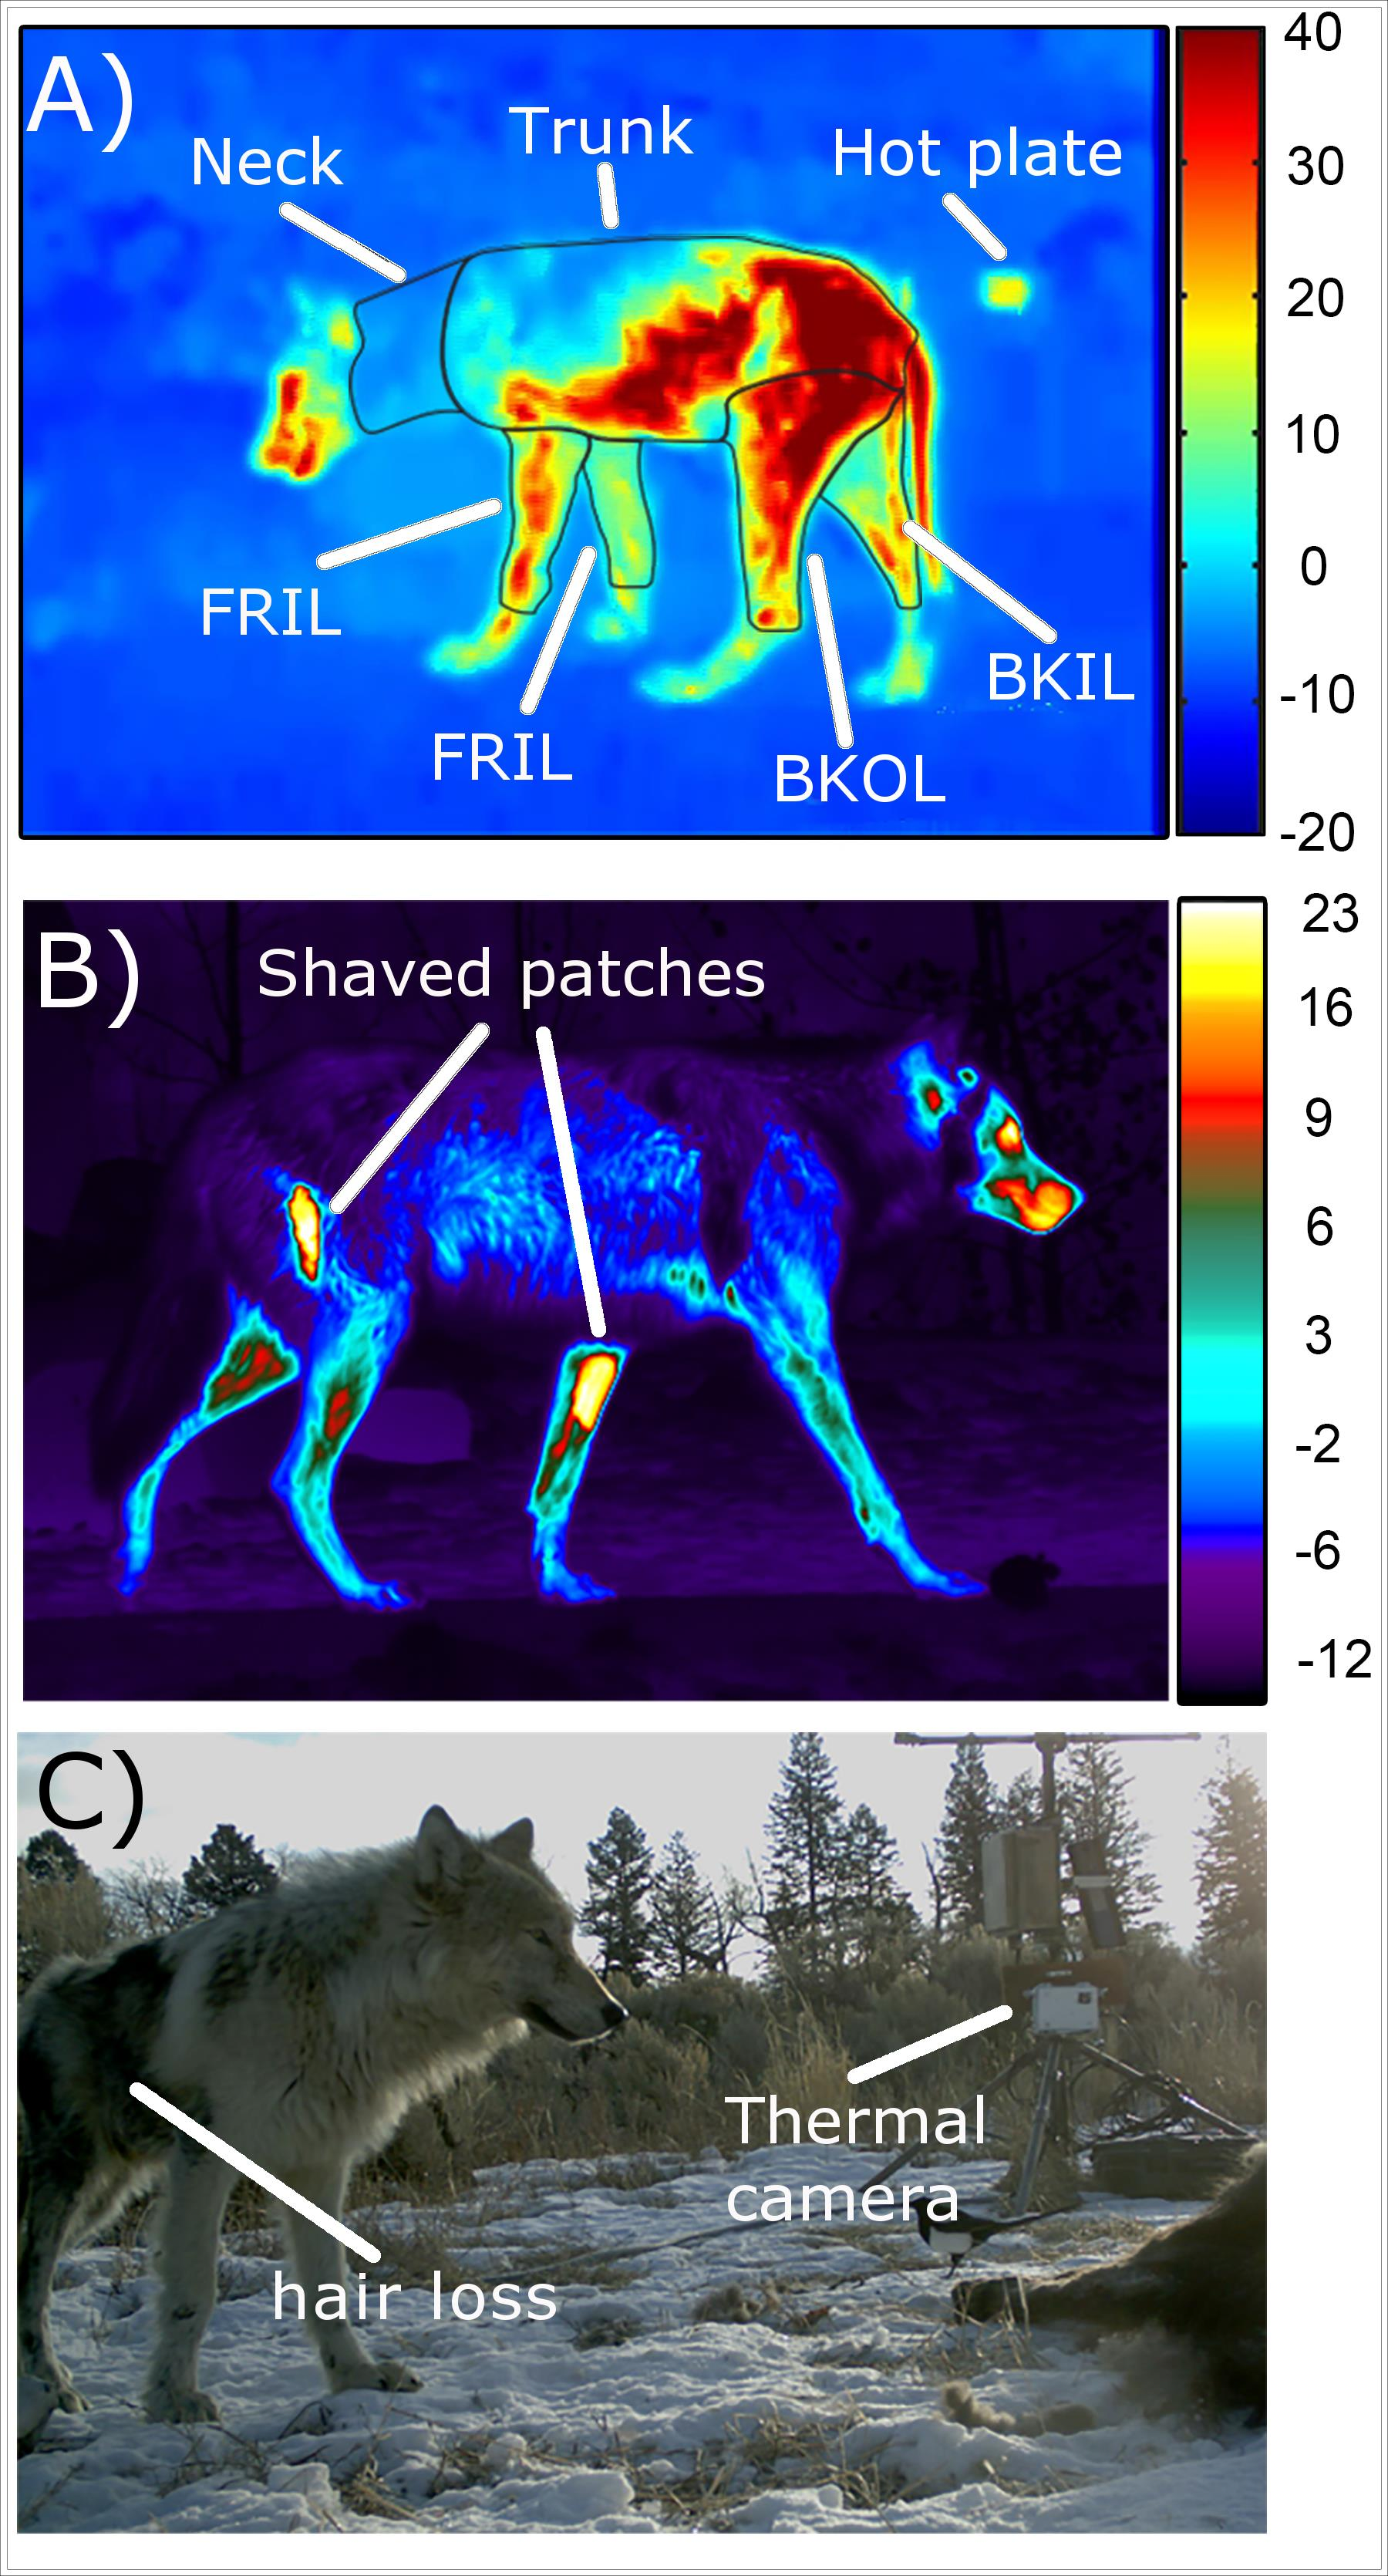 Fig. 1. Thermal imagery of field (A) and captive (B) wolves showing the delineation of some body regions (FROL = front outer leg, FRIL = front inner leg, BKOL = back outer leg, BKIL = back inner leg) as well as the shaved patches on captive wolves. The remotely triggered thermal camera and weather station are shown in (C). Both the wolves in panels A and C were infected with mange. Credit, Ecological Society of America.